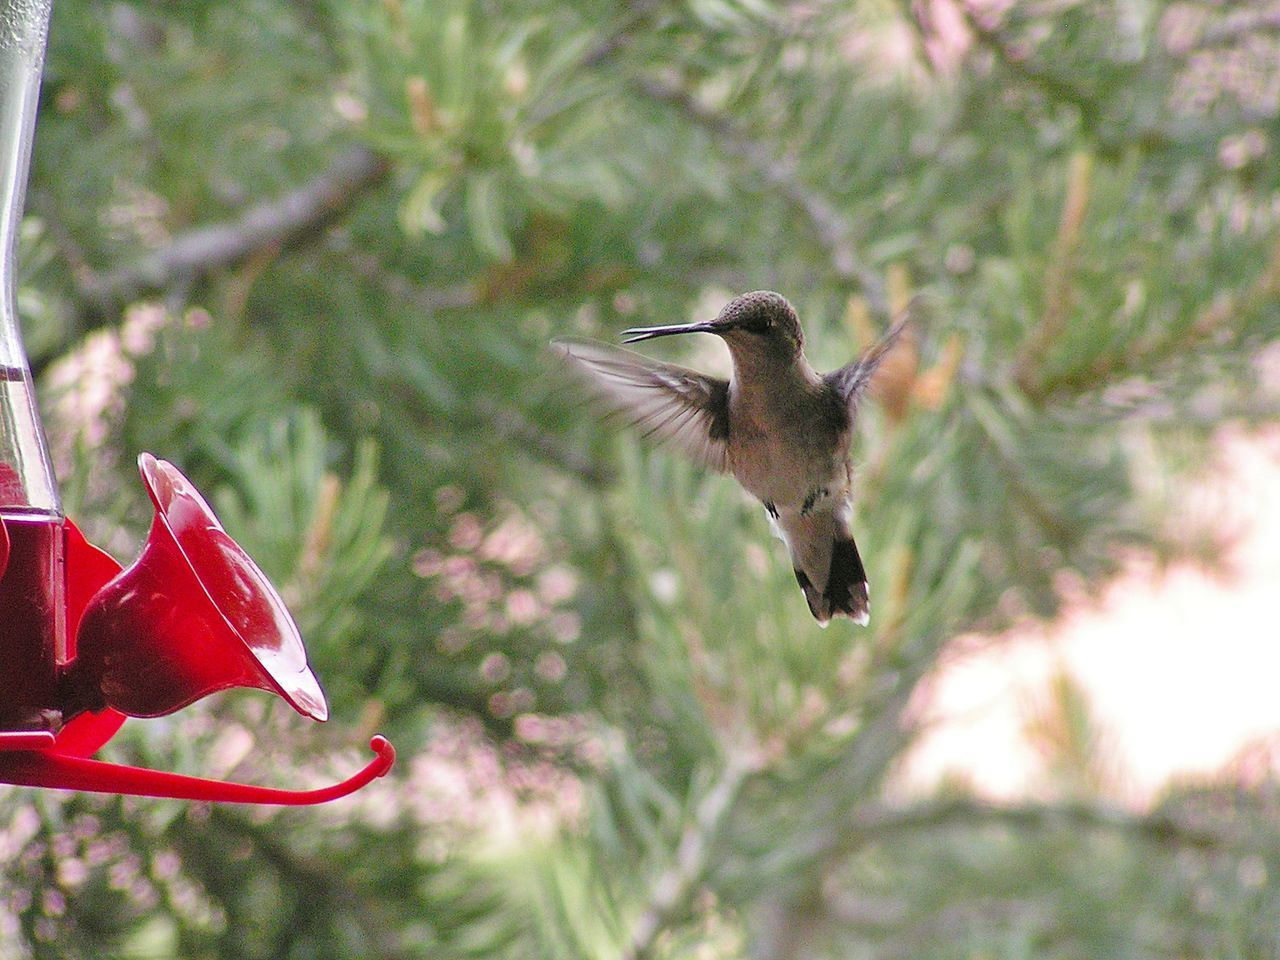 """Whoa, No Bees?!"" Animal Themes Animals In The Wild Beautiful Nature Bird Birds Of EyeEm  Close-up Day EyeEm Gallery EyeEm Nature Lover Flying Focus On Foreground Hummingbird Hummingbirdphotography Hummingbirds Mid-air Nature No People Outdoors Red Spread Wings Tree Utah"